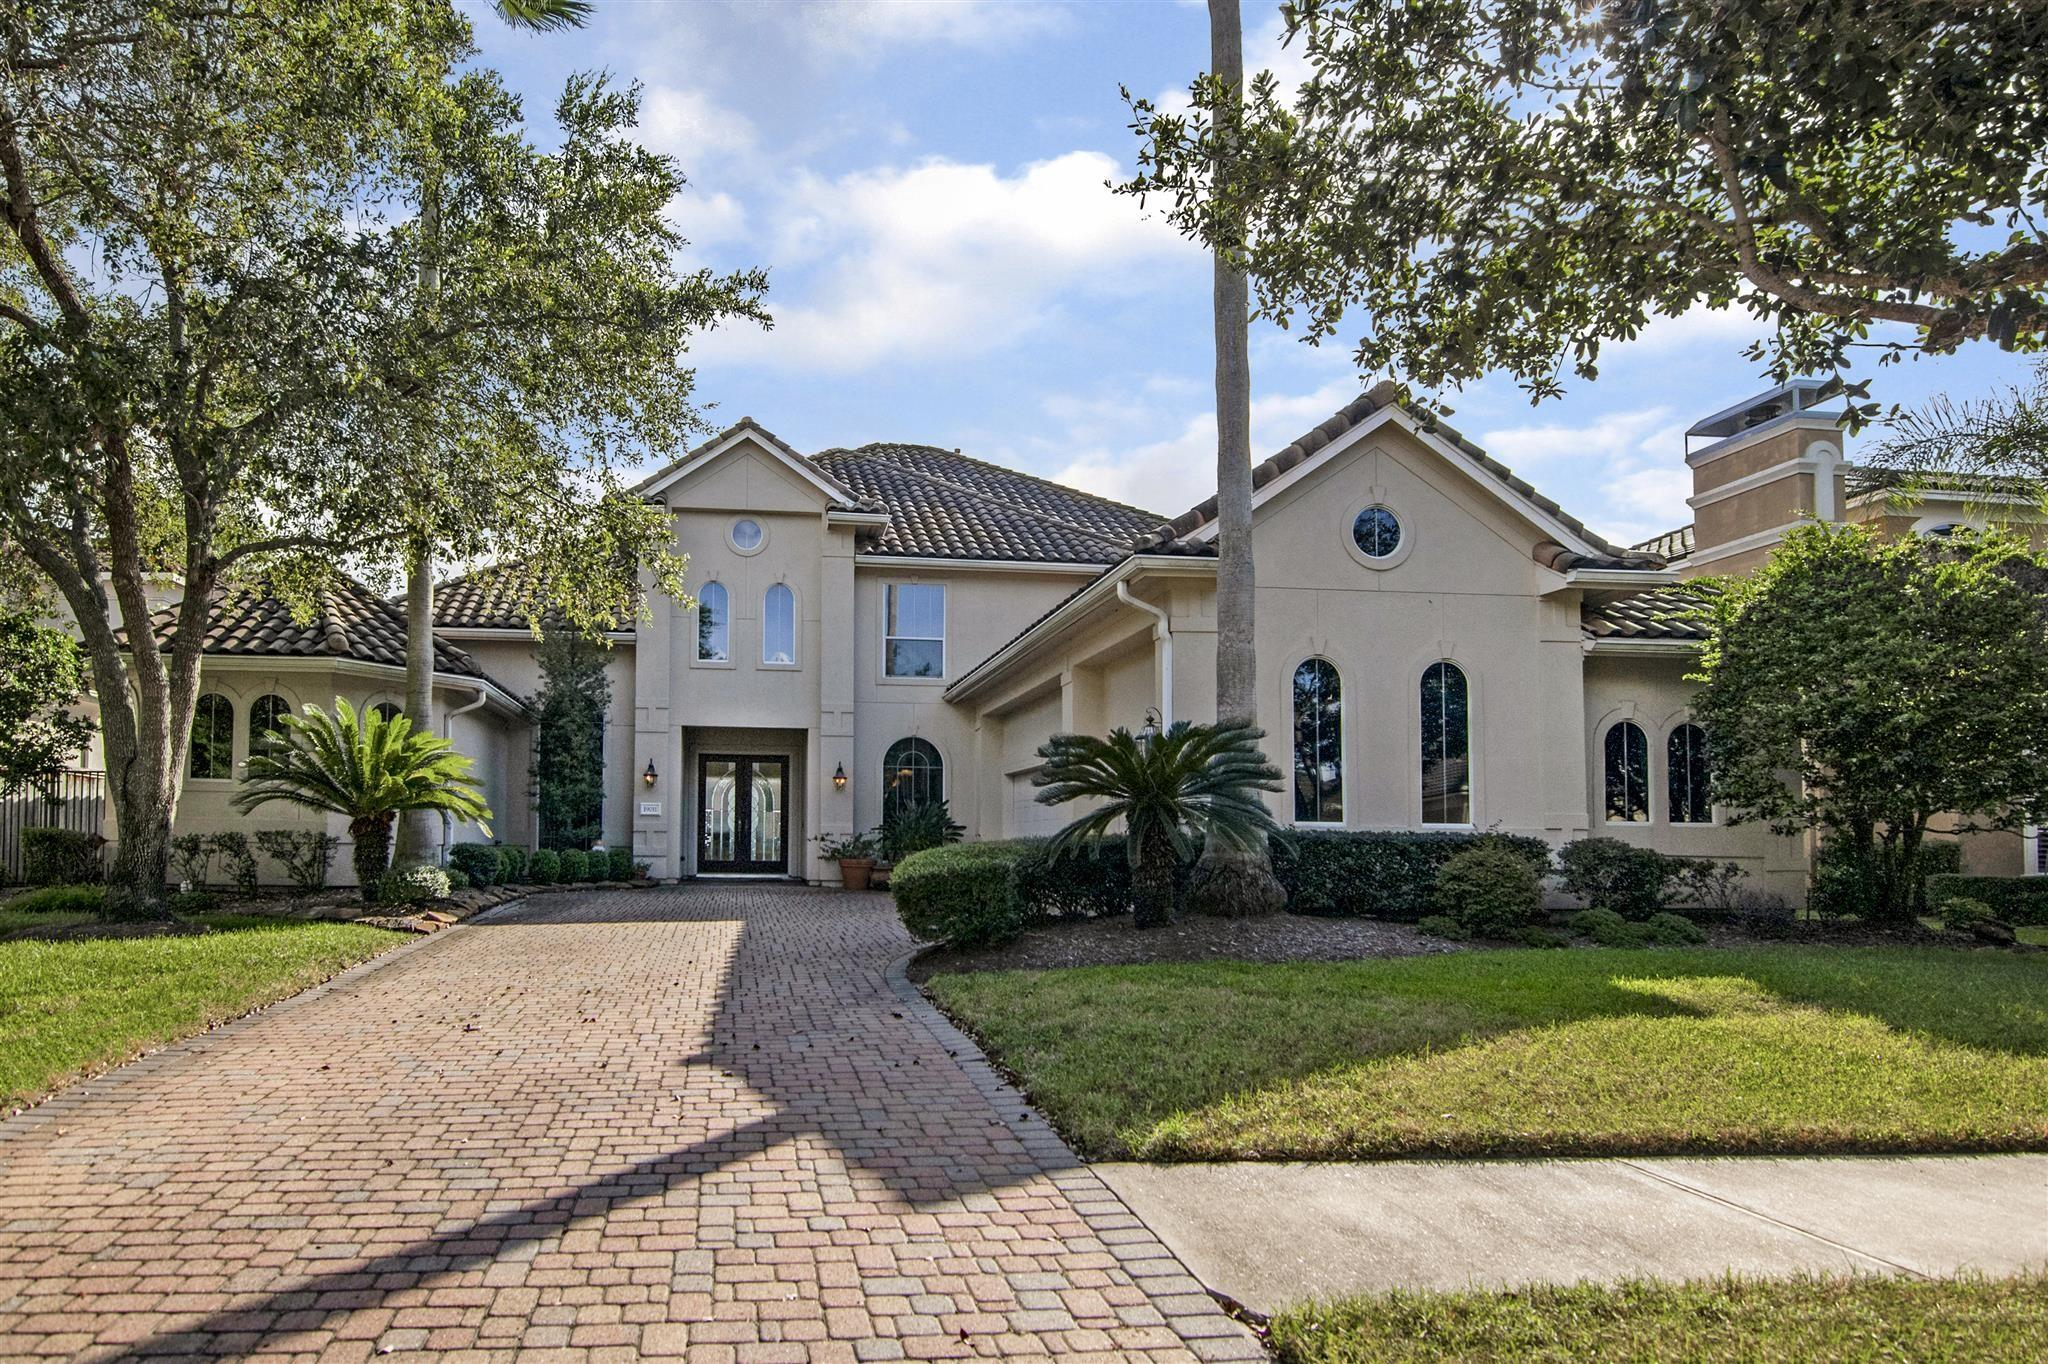 19011 Waterford Cove Property Photo - Houston, TX real estate listing